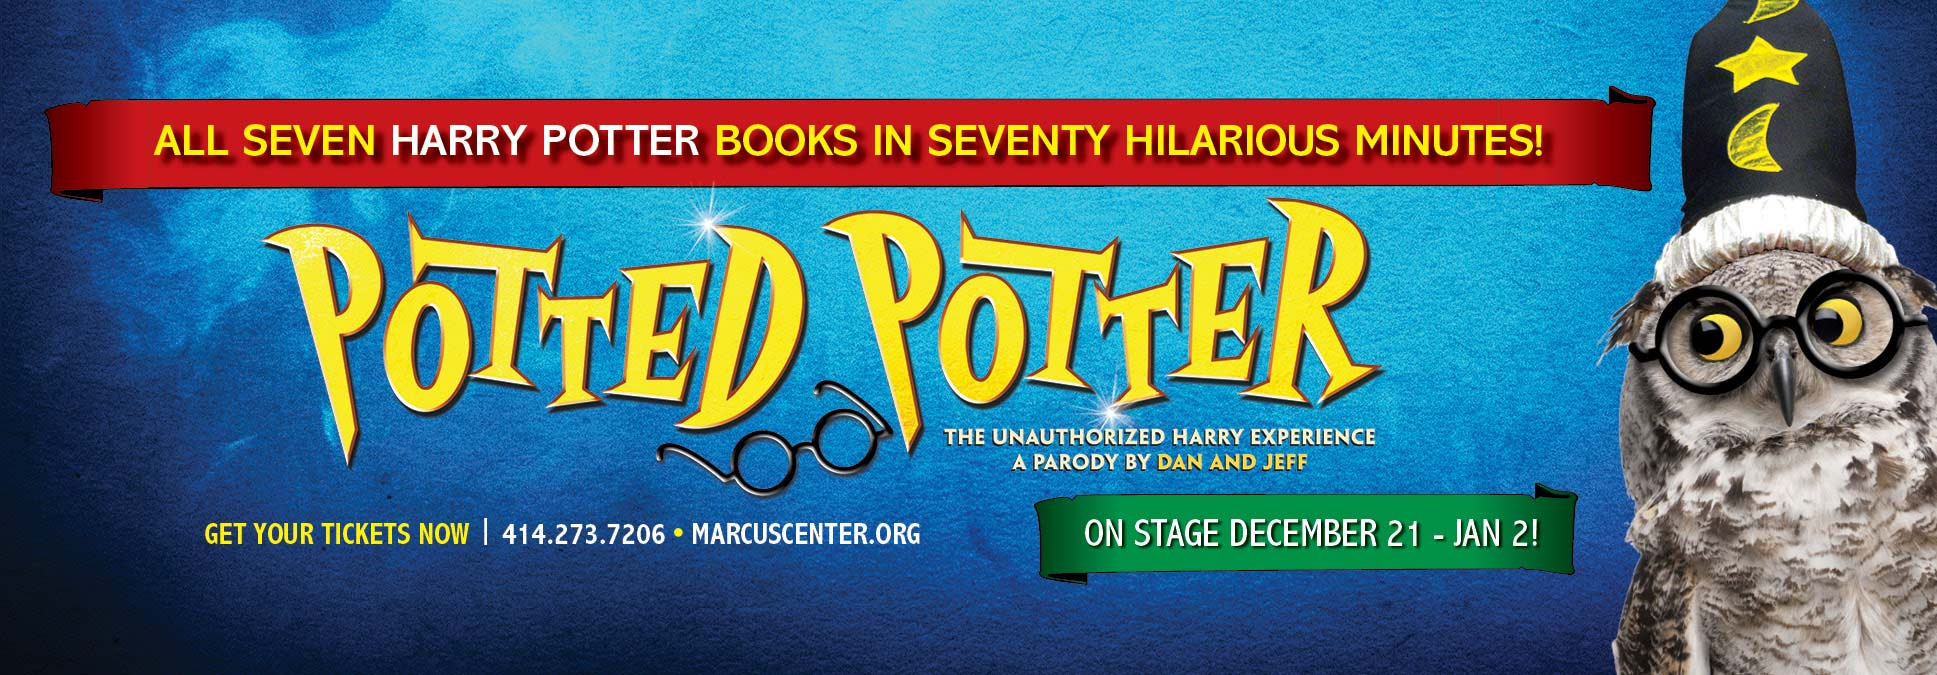 Potted Potter at the Marcus Center in Milwaukee